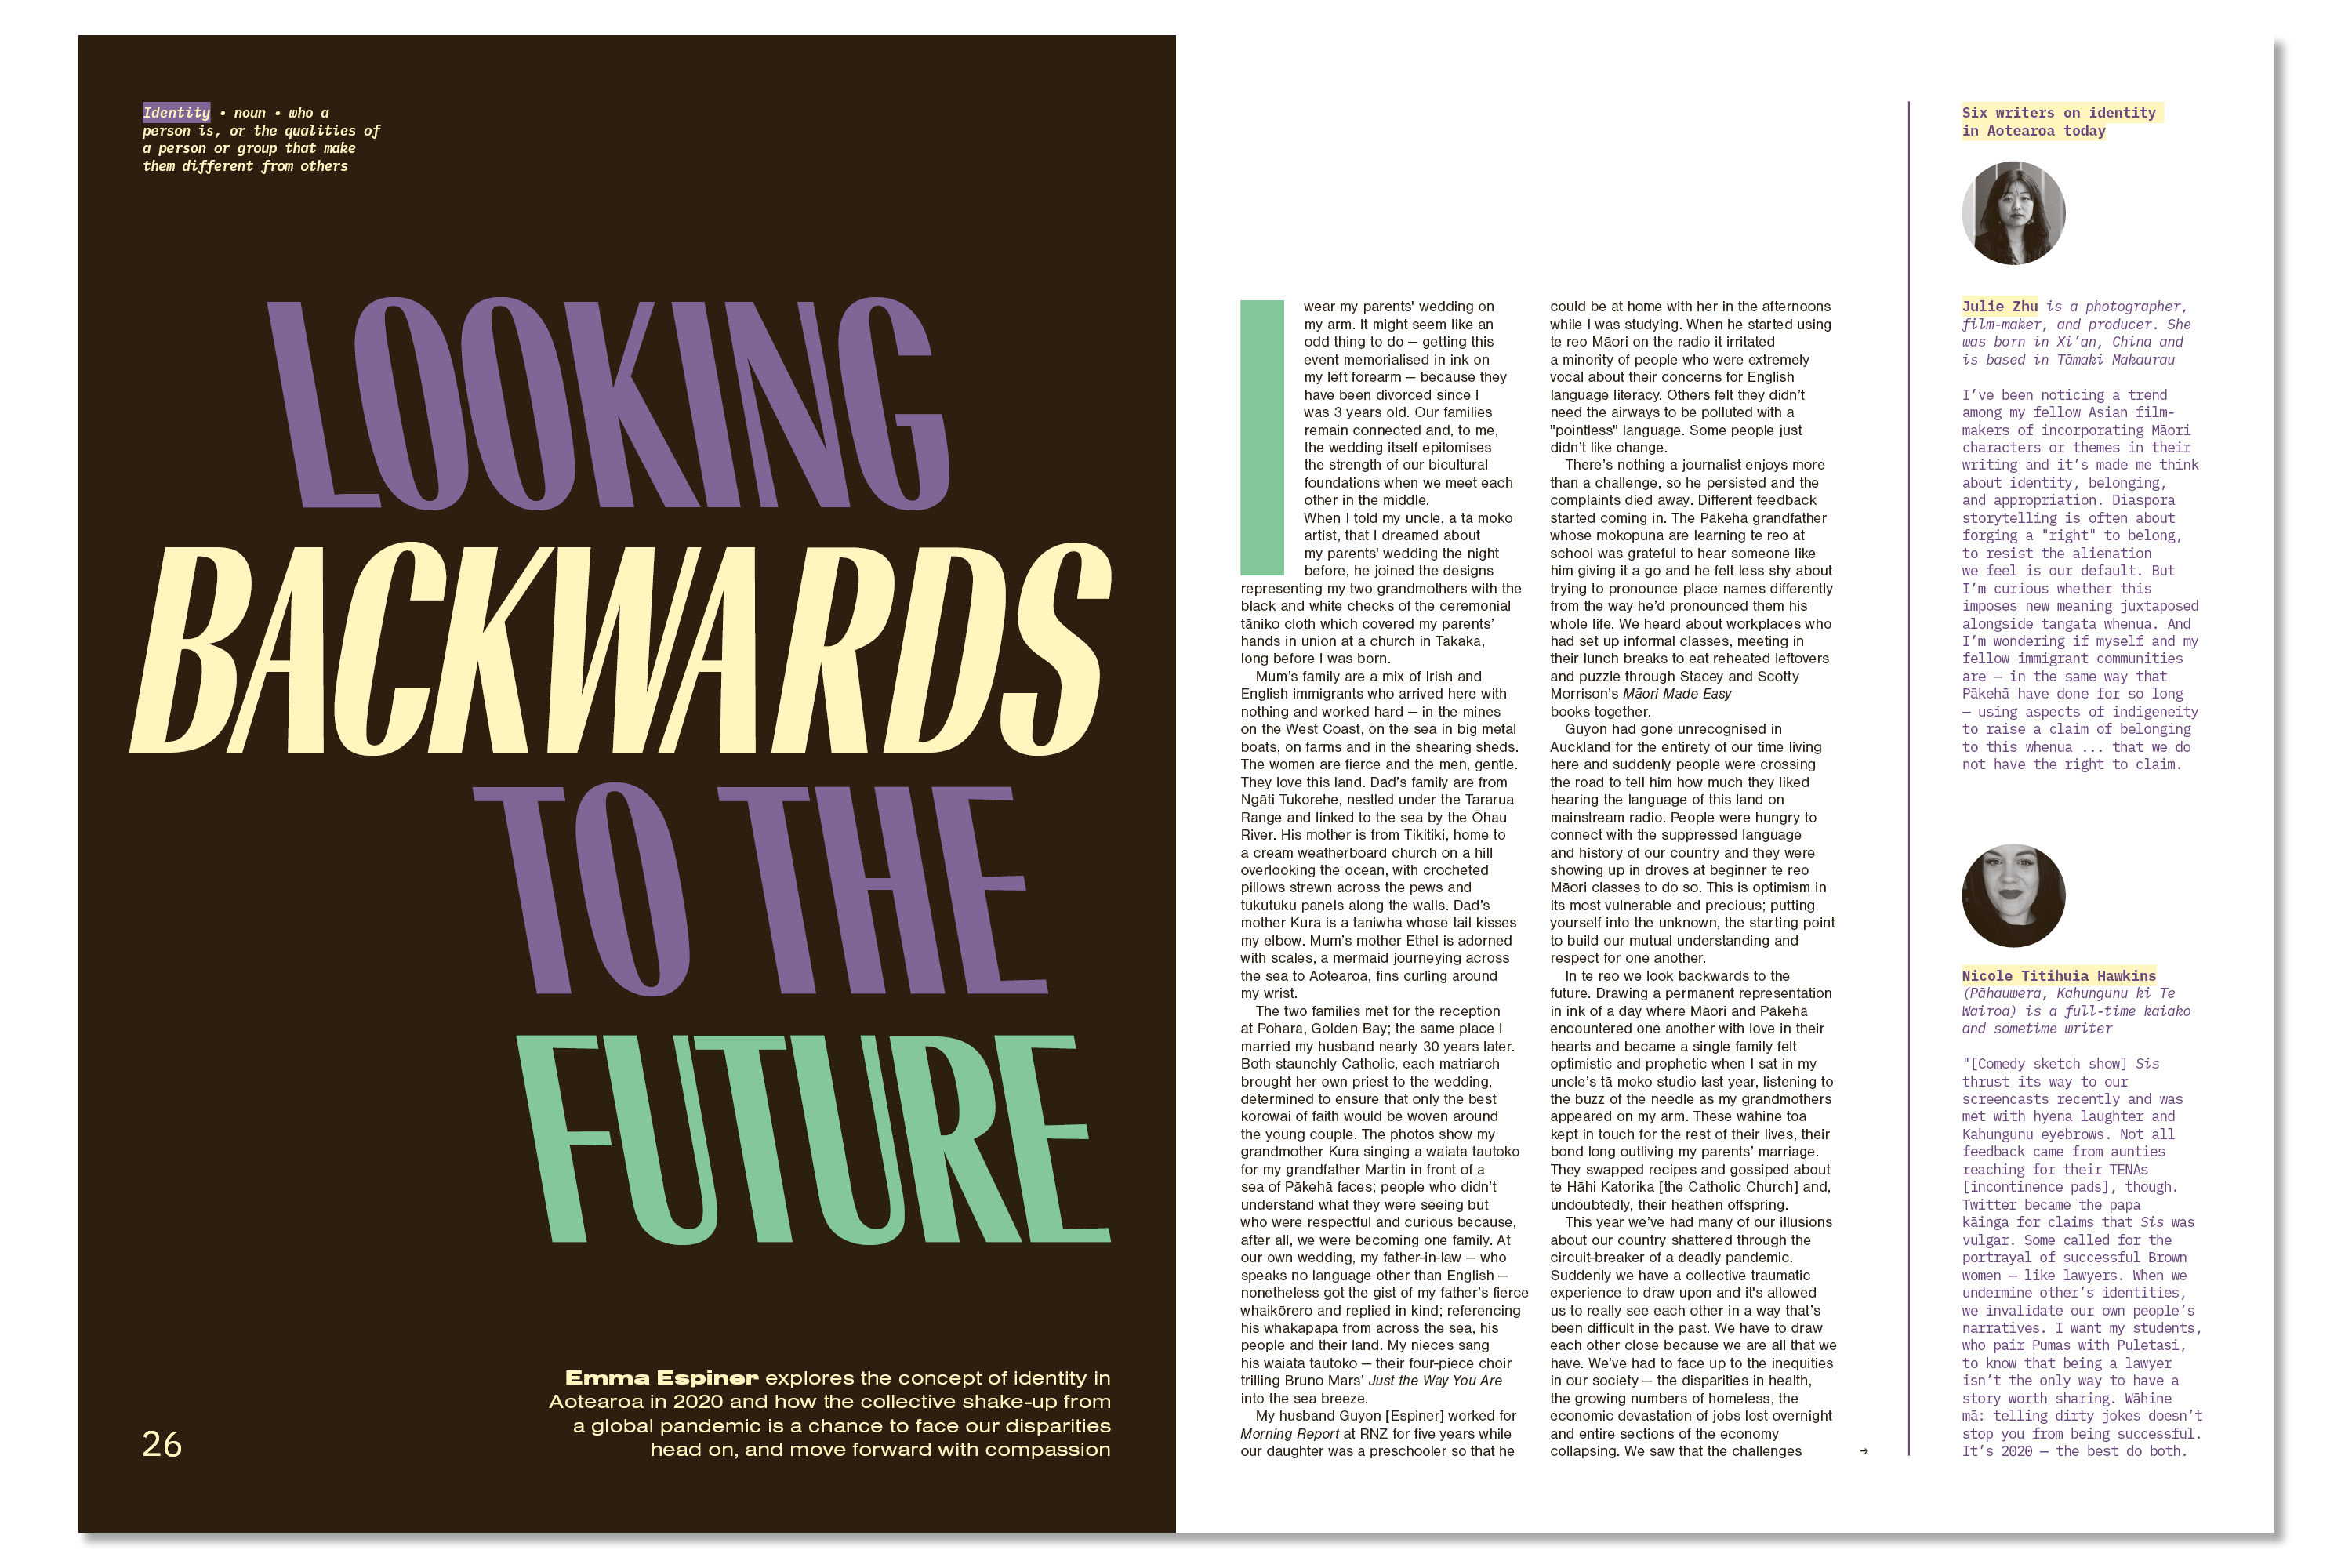 2 Looking Backwards to the future identity in Aotearoa in 2020